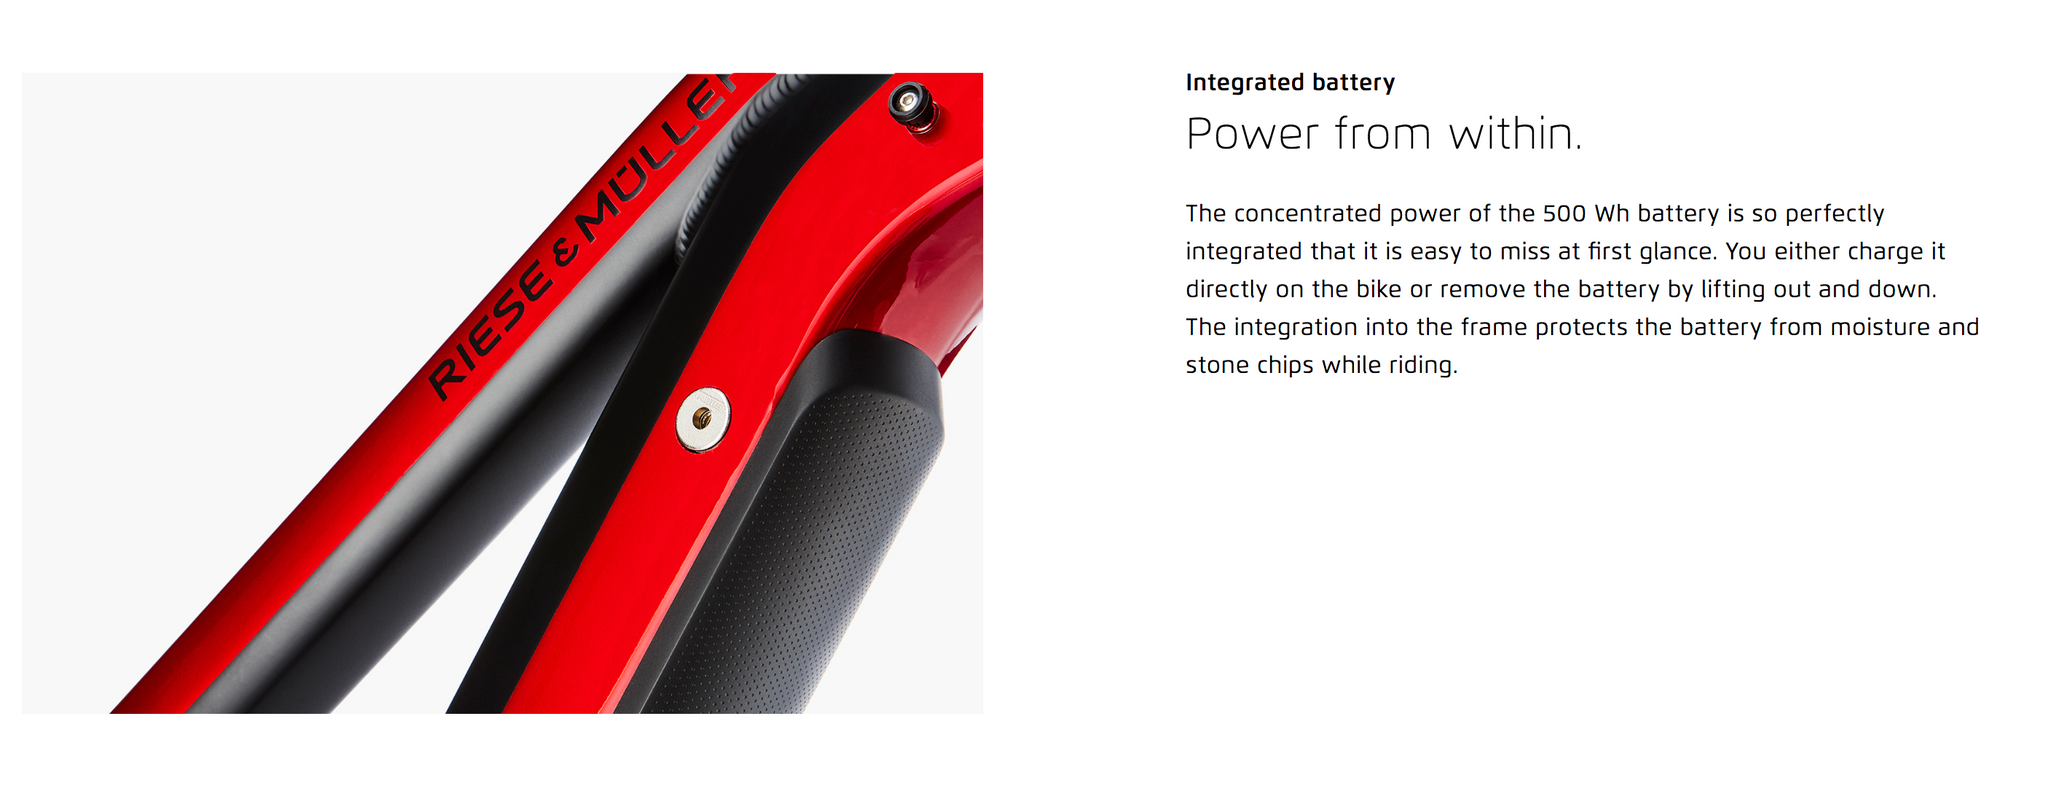 Power from within. The concentrated power of the 500 Wh battery is so perfectly integrated that it is easy to miss at first glance. You either charge it directly on the bike or remove the battery by lifting out and down. The integration into the frame protects the battery from moisture and stone chips while riding.